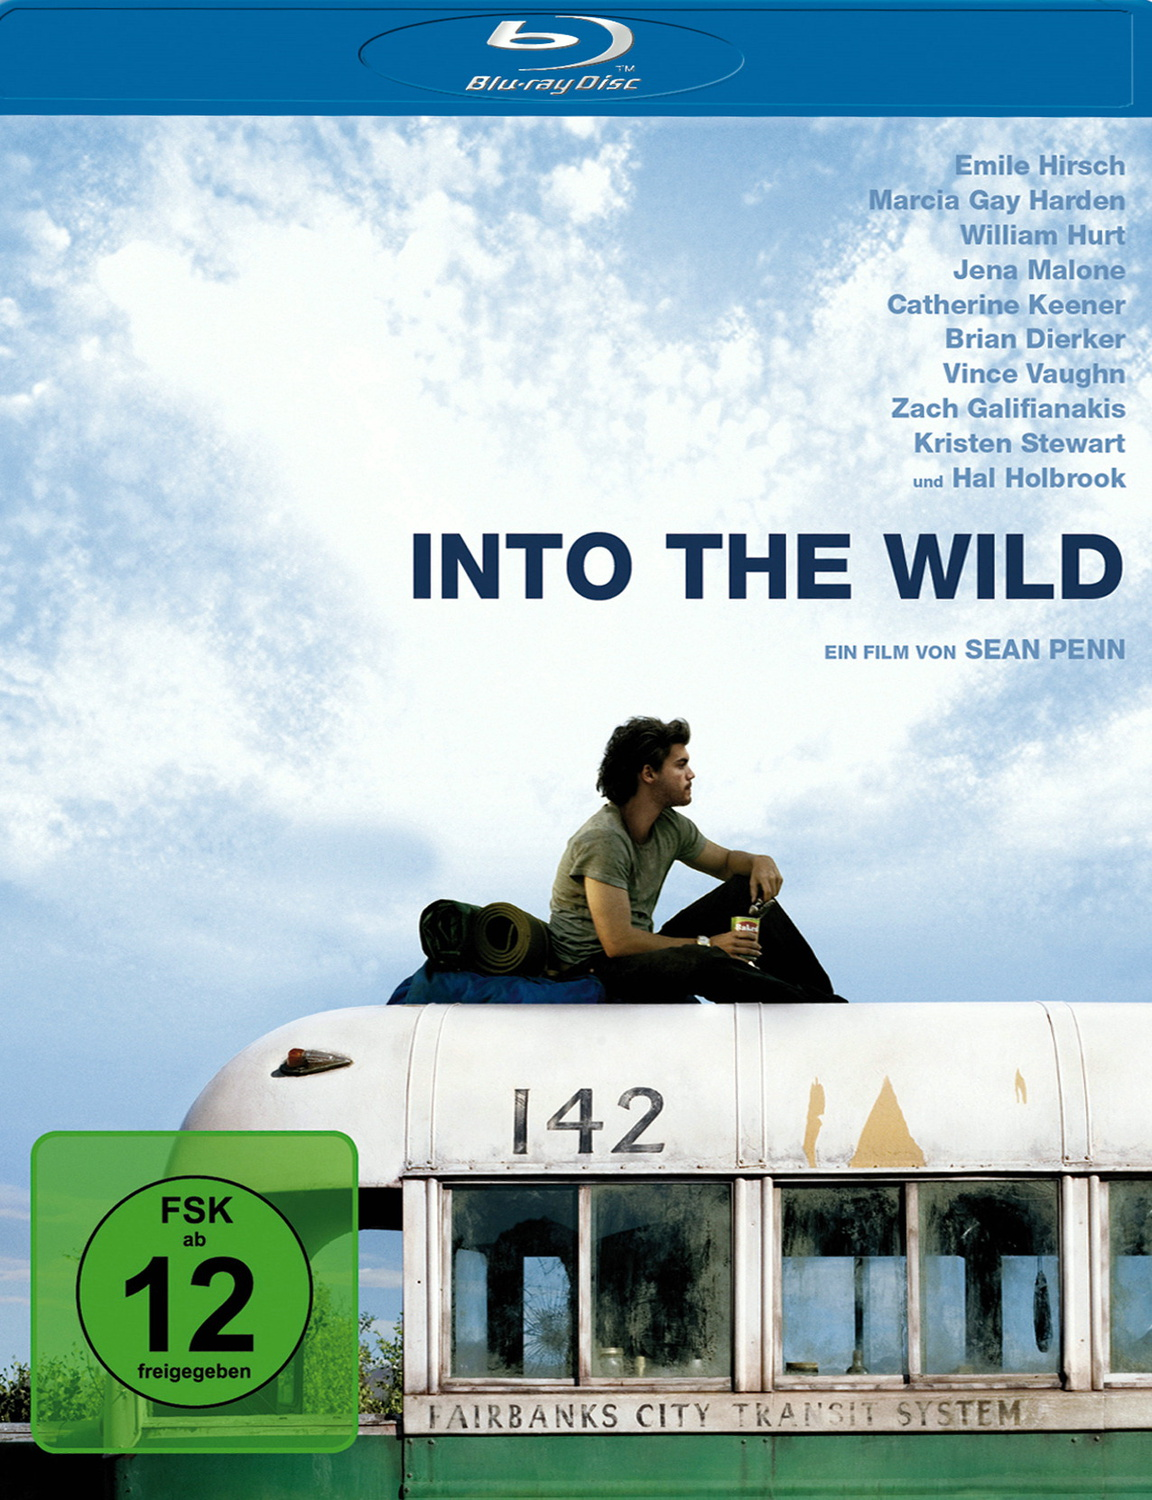 walt mccandless from into the wild But into the wild wasn't chris' entire story, and what remained unsaid lived within me for years to come, the weight of that responsibility lingered: through the production of sean penn's internationally acclaimed film adaptation, and silently among the constantly arising questions and countless articles that examined chris' reasoning.